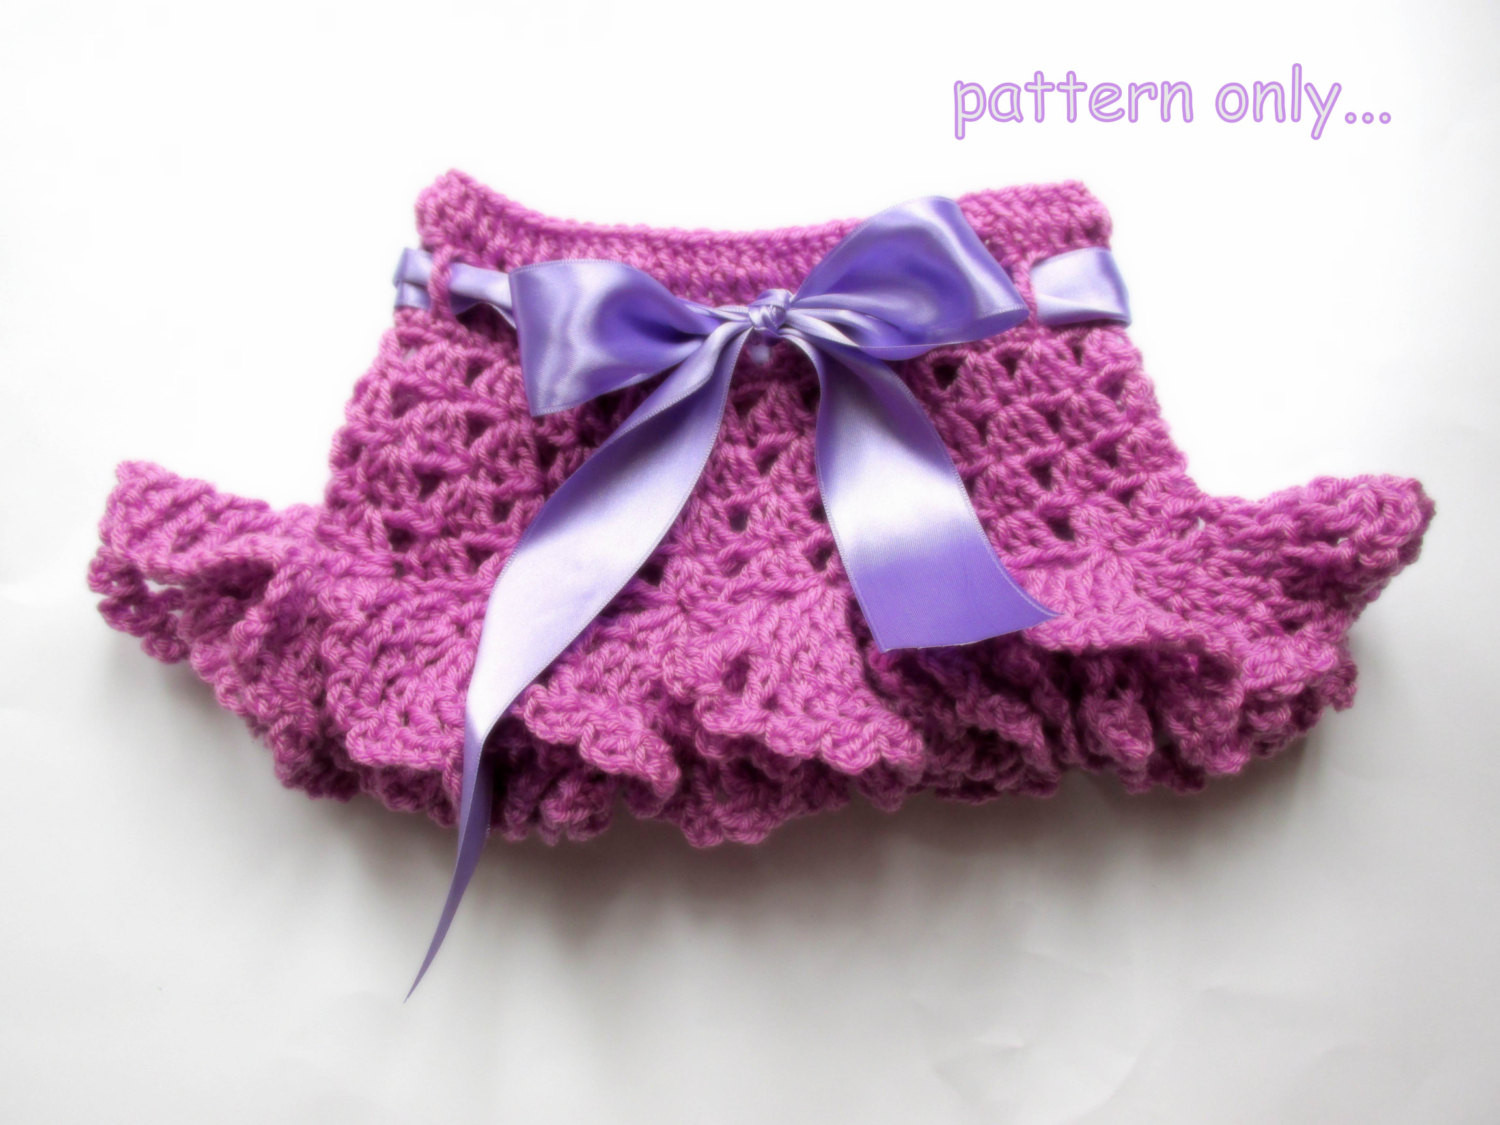 Crochet Skirt Patterns Unique Baby Skirt Crochet Pattern toddler Skirt Pattern Diy Of Fresh 47 Ideas Crochet Skirt Patterns